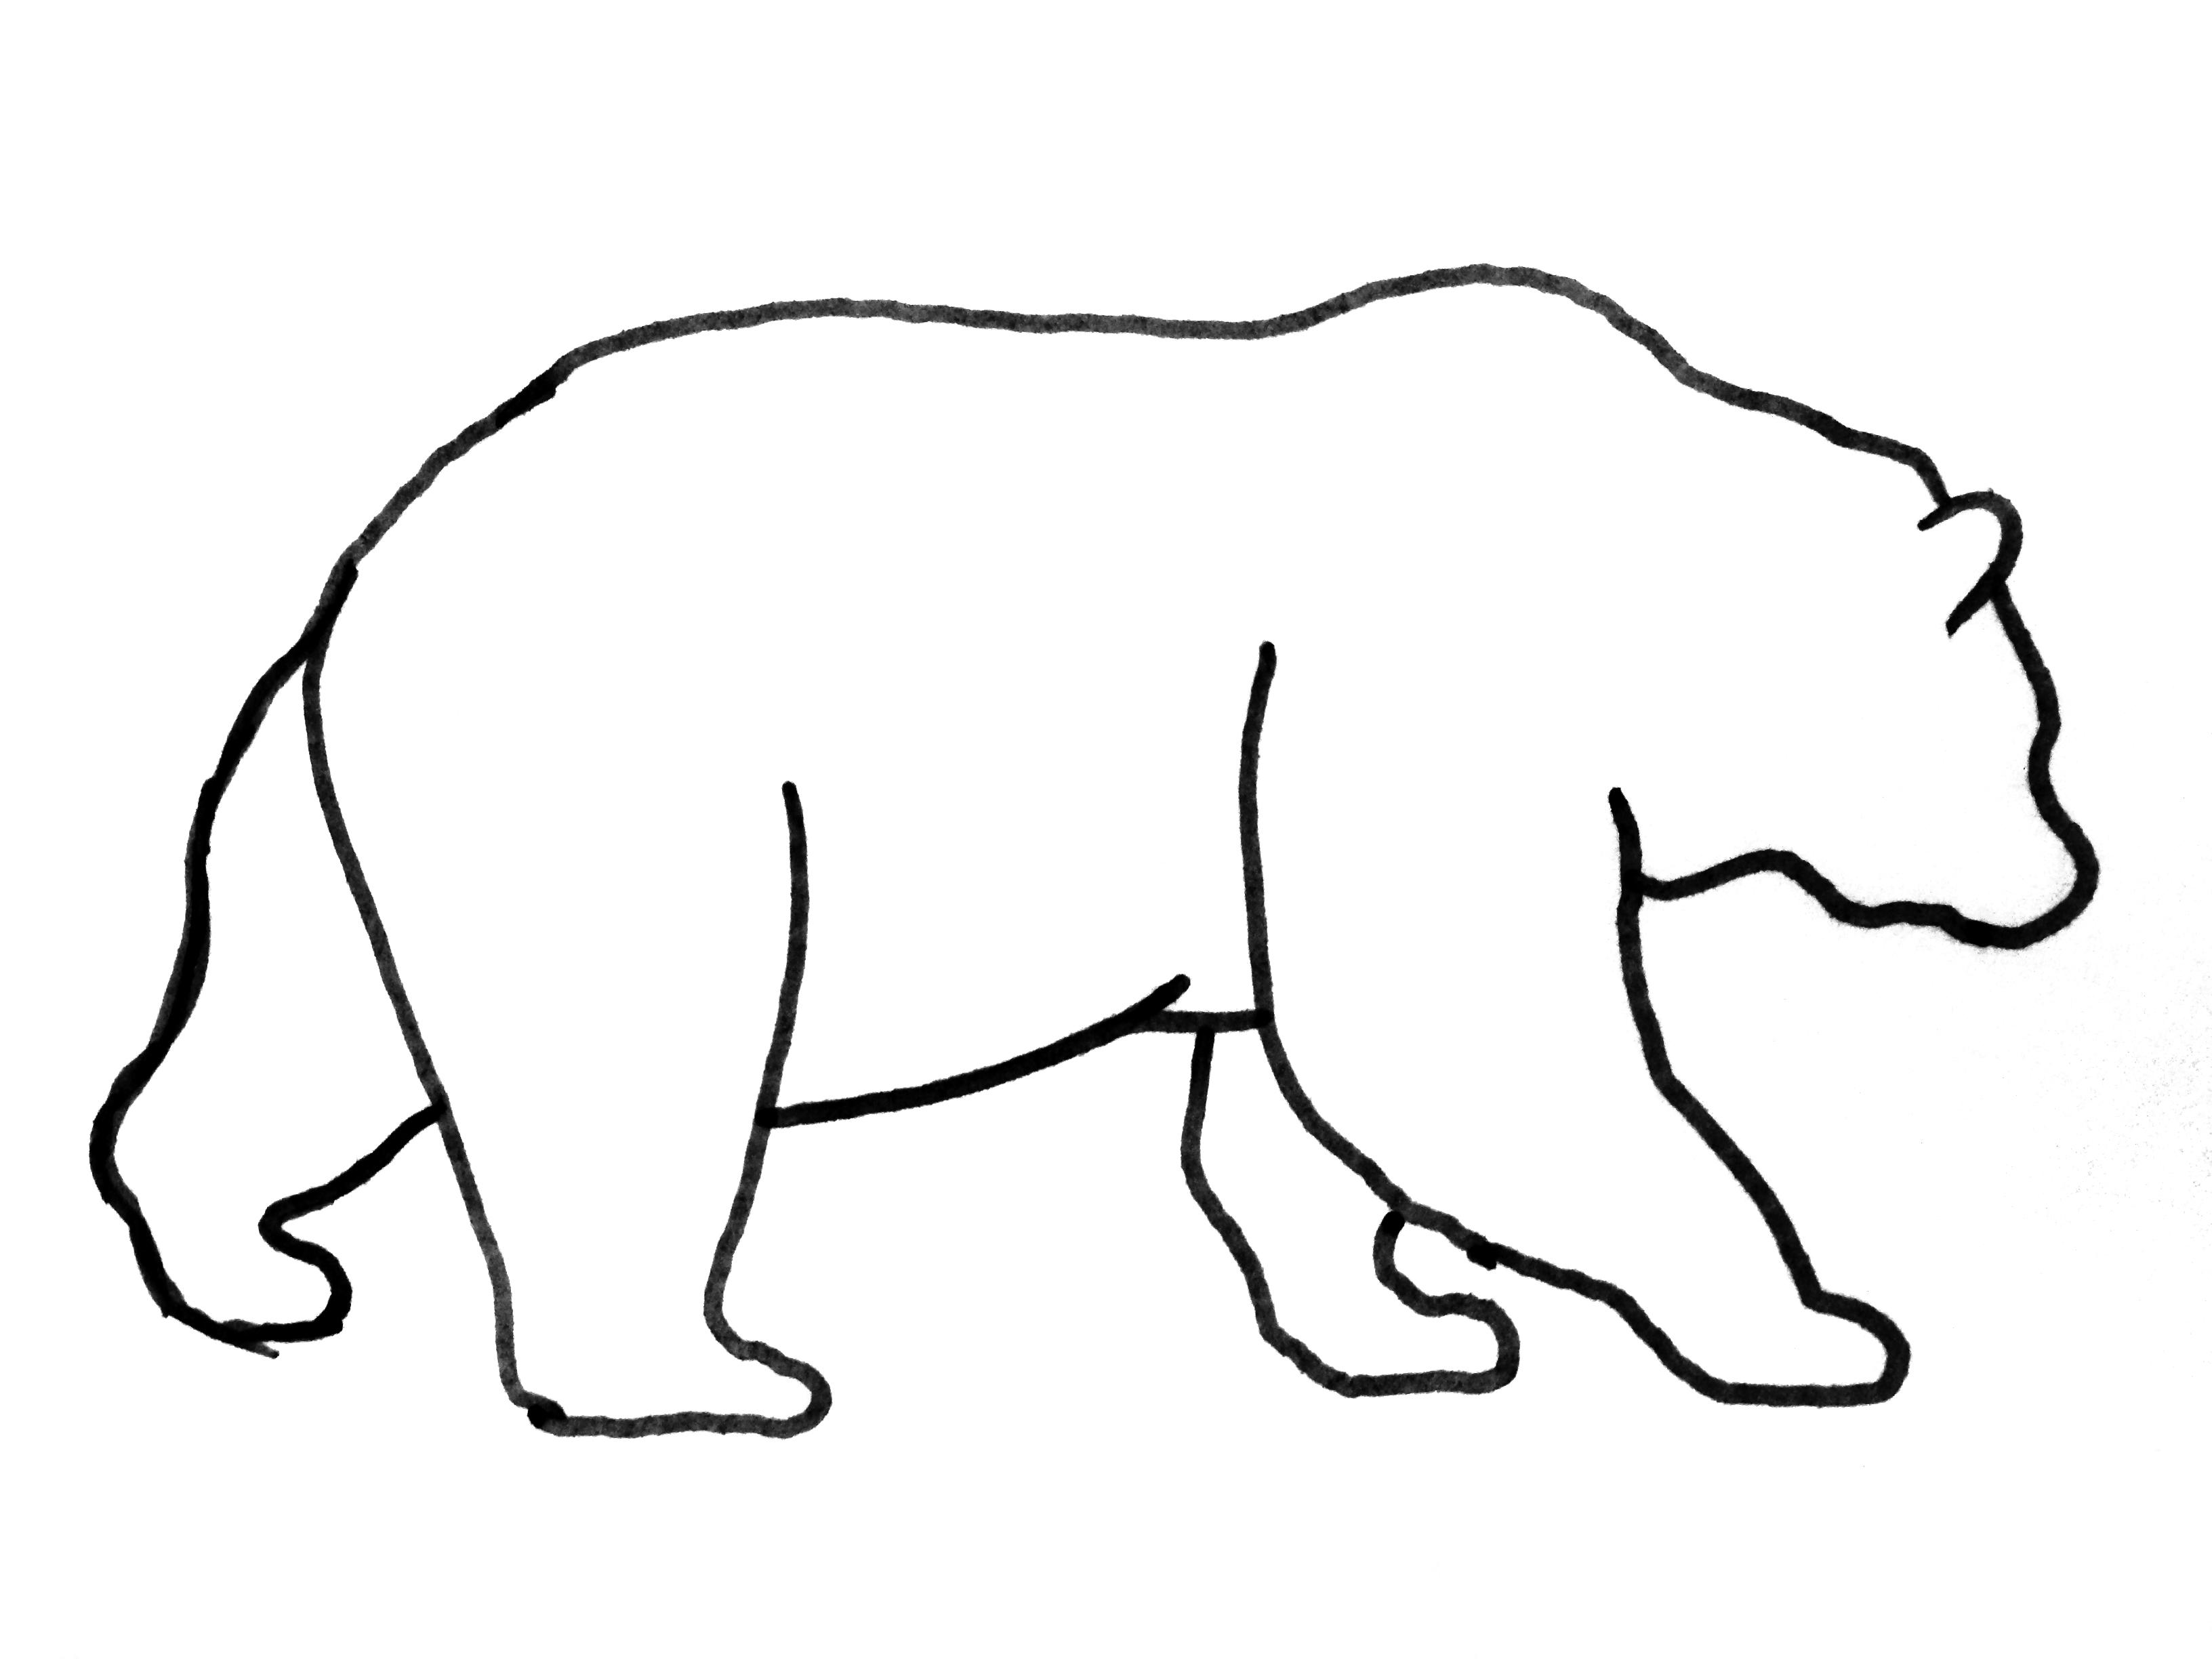 Drawn grizzly bear strong To the It's the even